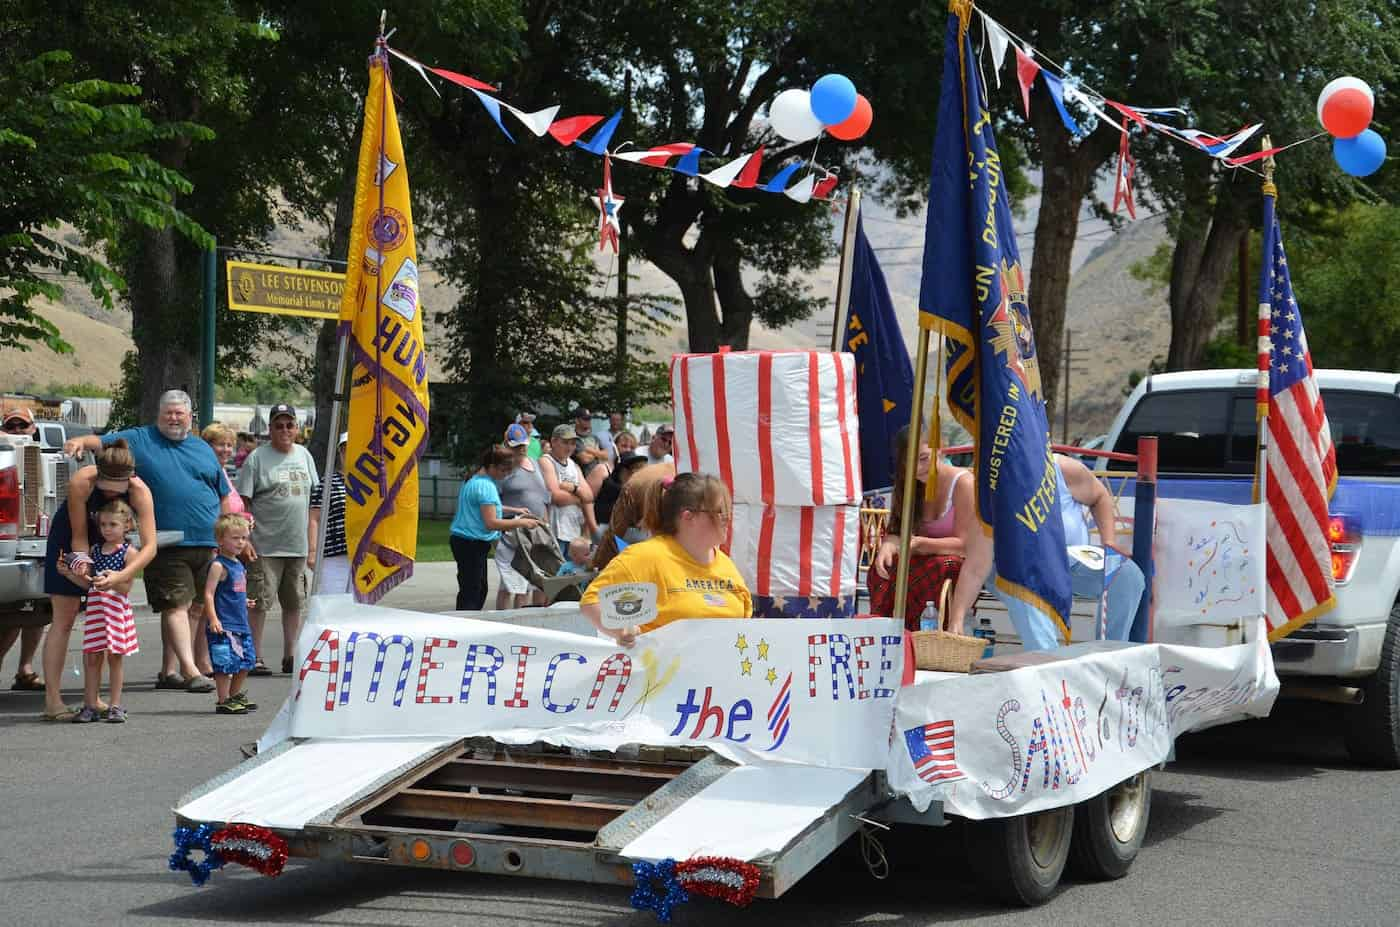 A 4th of July parade in Huntington, Oregon. Photo by Baker County Tourism/Flickr